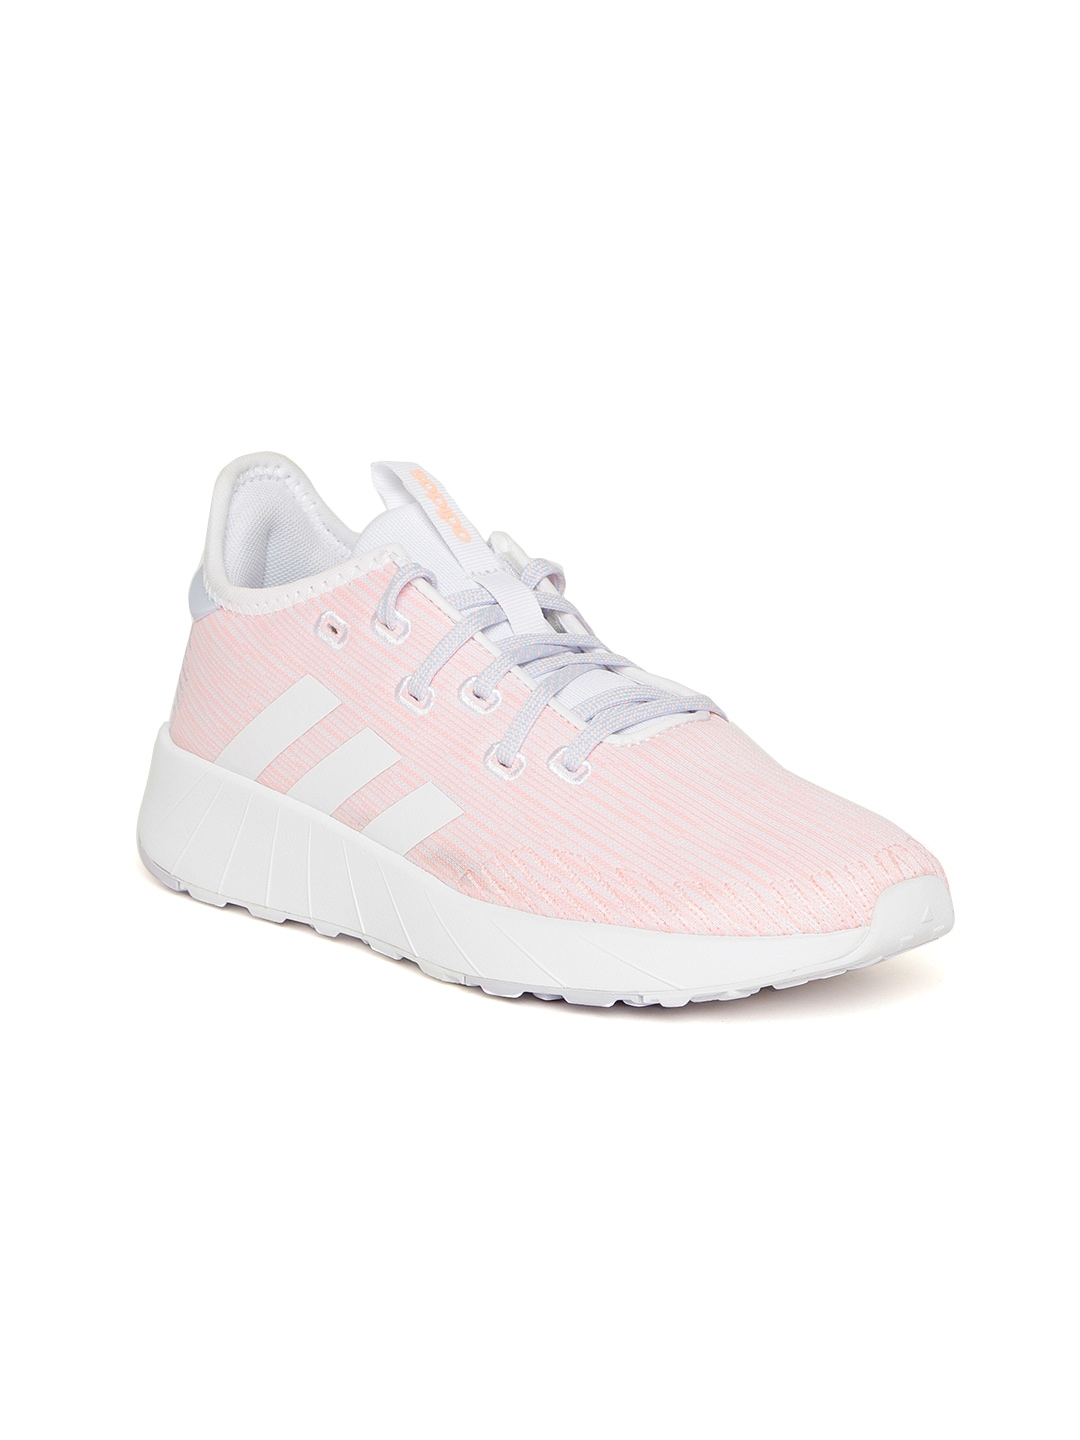 best sneakers cf89e 853b7 Shoe Adidas Watches - Buy Shoe Adidas Watches online in India